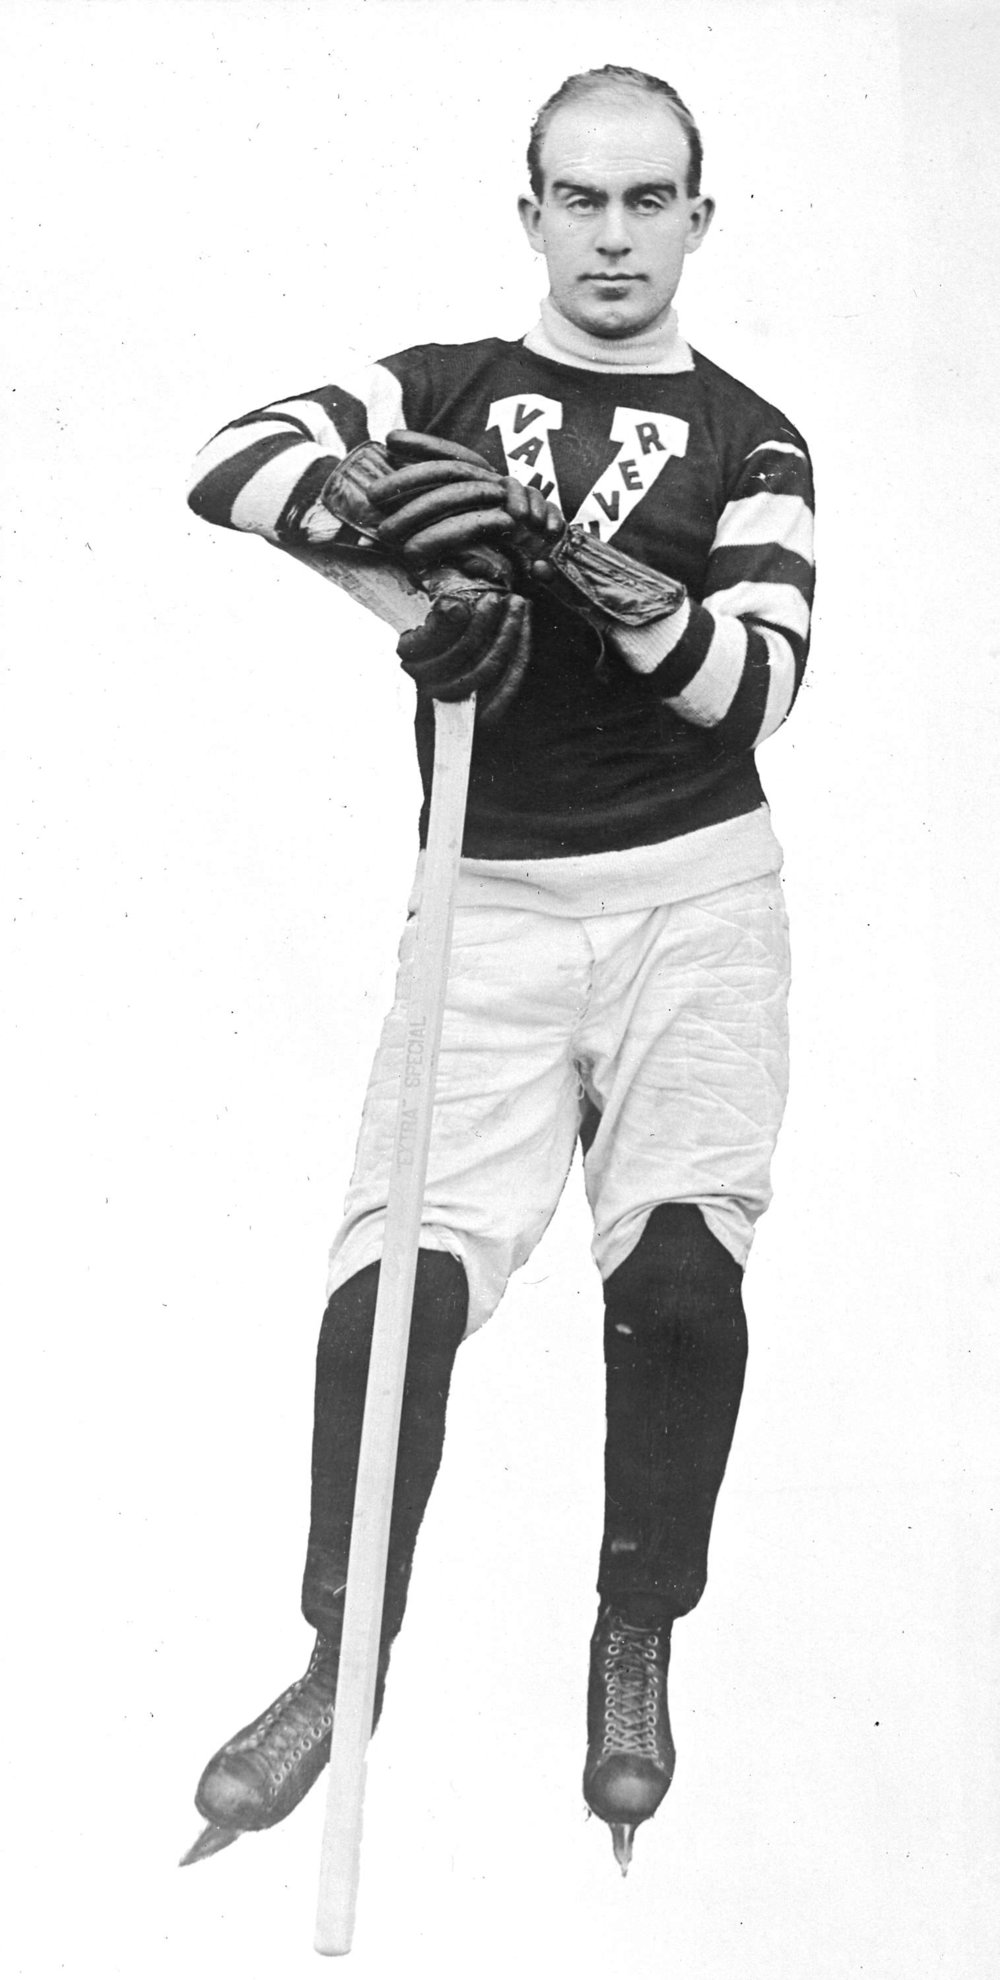 """Image source: The City of Vancouver Archives  Reference Code:AM1535-: CVA 99-778  Item : CVA 99-778 - [Copy photo of hockey player Fred """"Cyclone"""" Taylor]  http://searcharchives.vancouver.ca/copy-photo-of-hockey-player-fred-cyclone-taylor"""